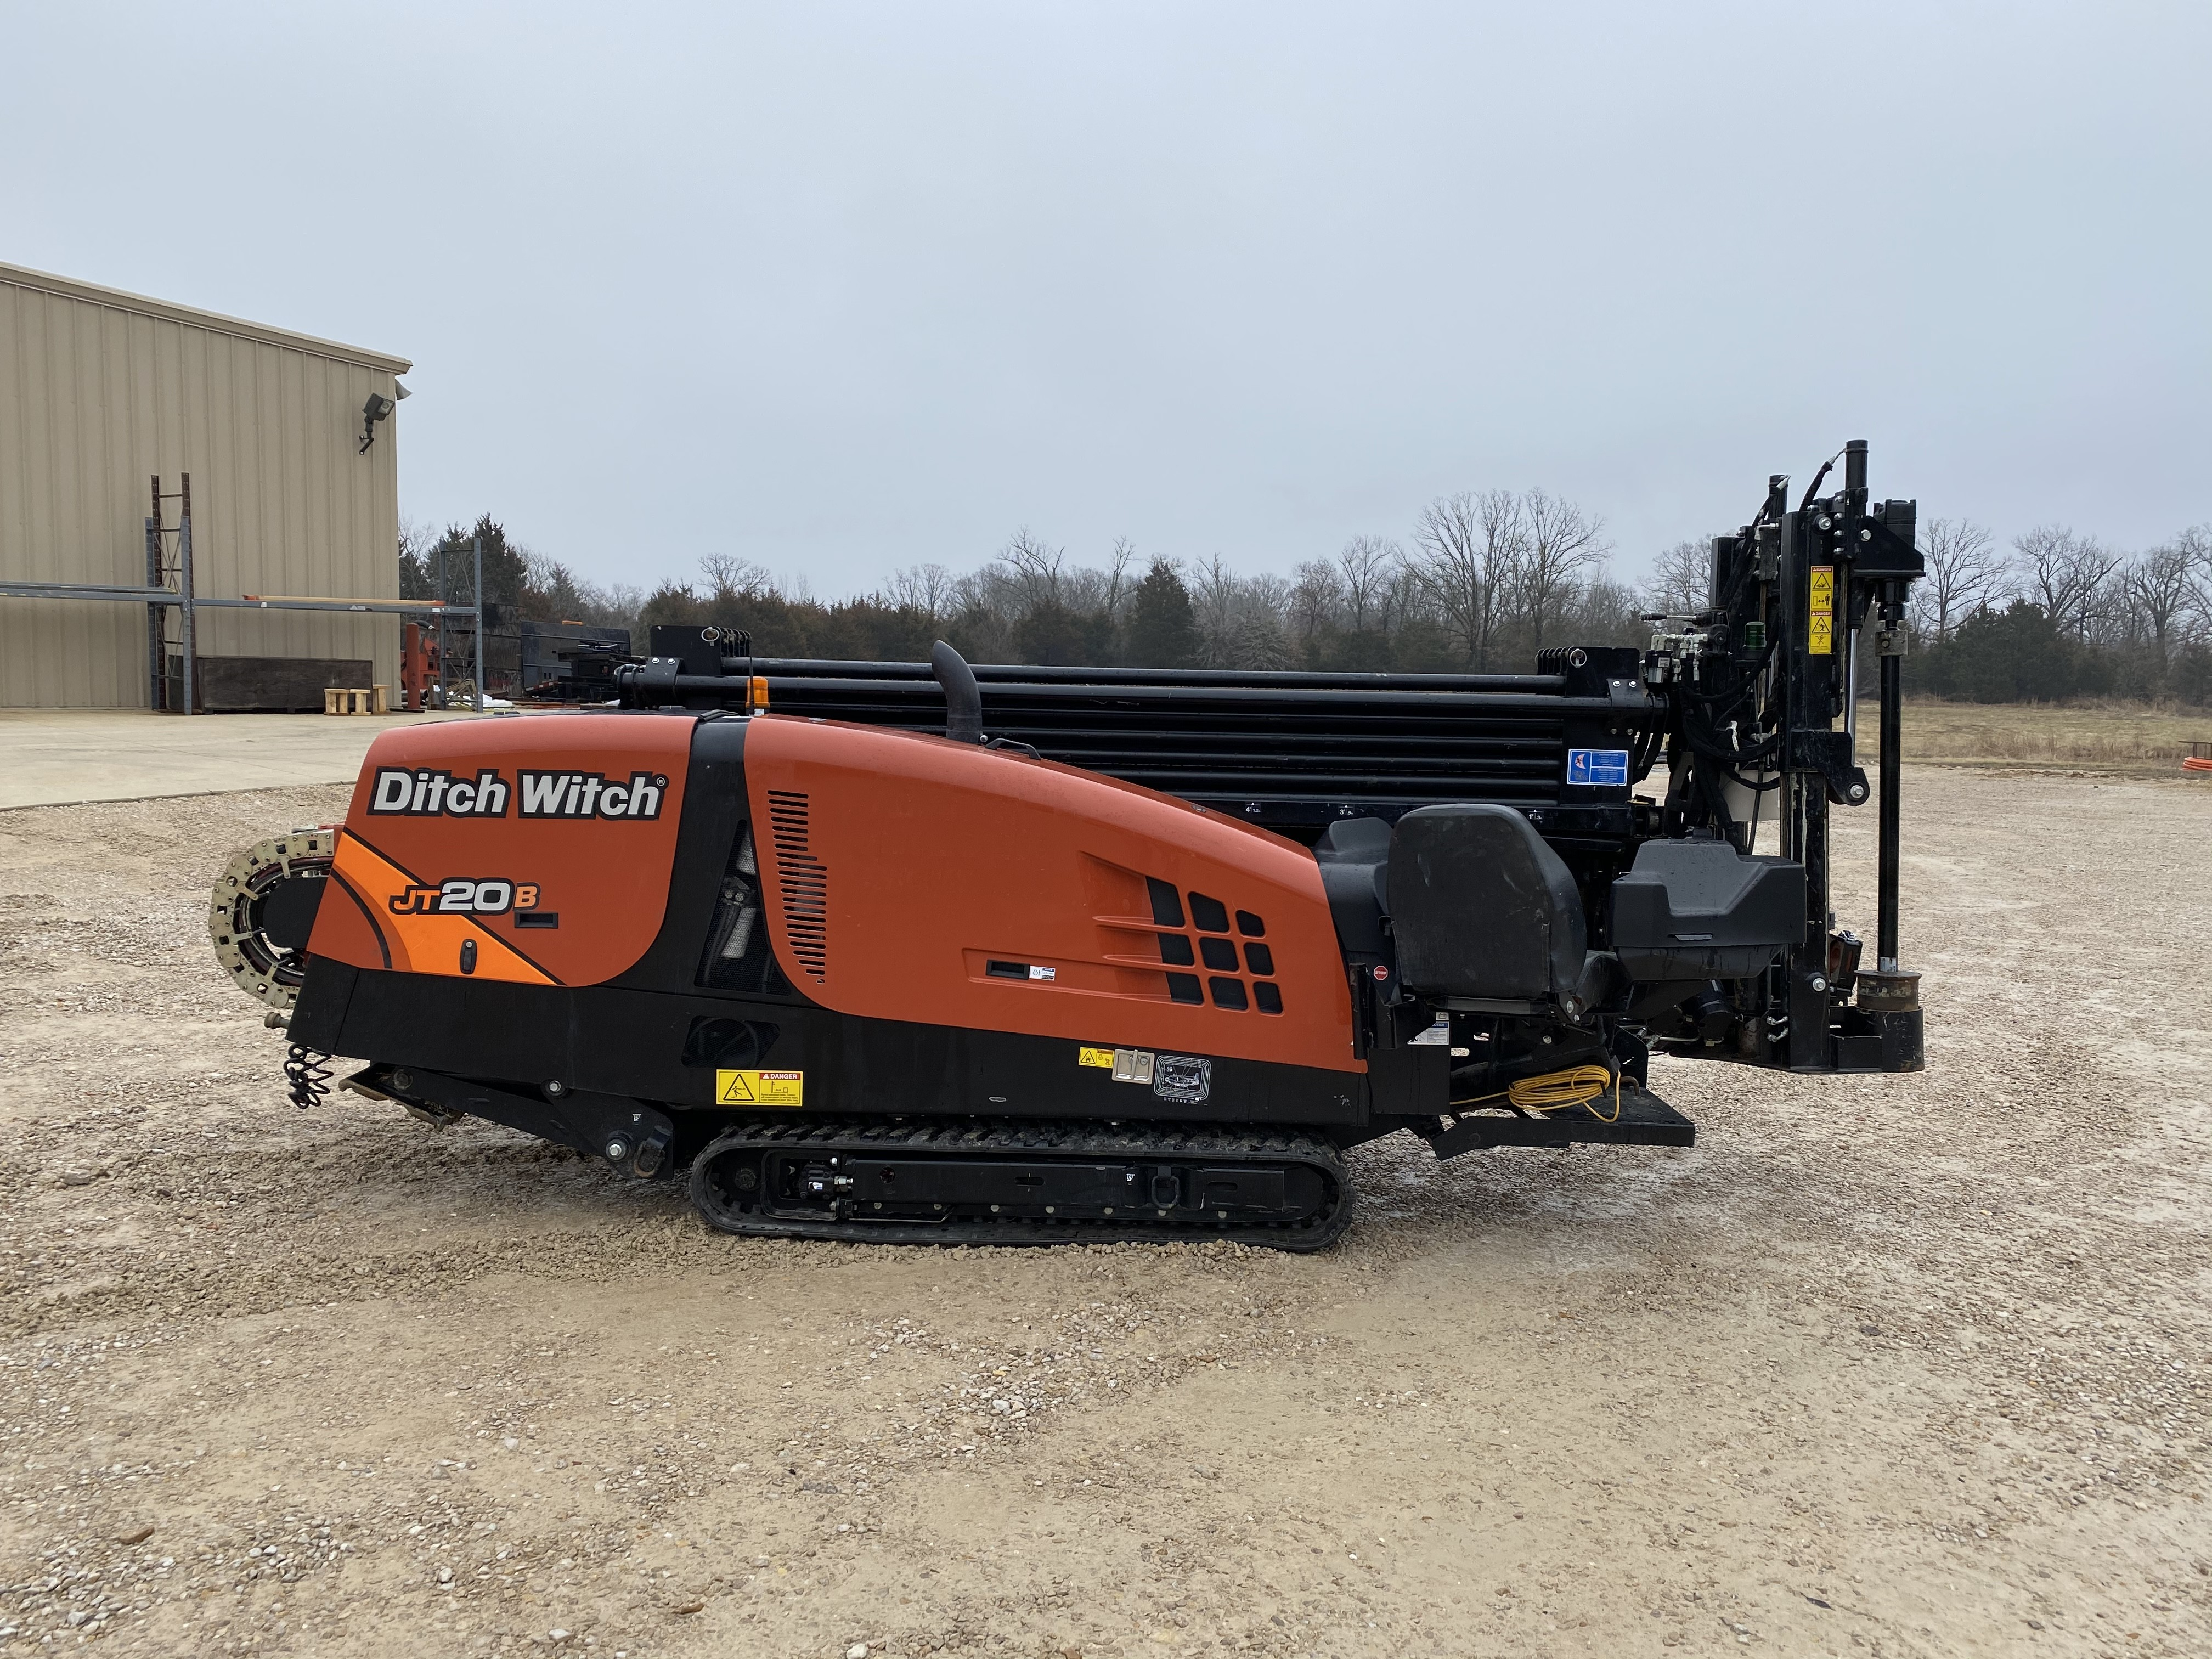 Used, 2019, Ditch Witch, JT20 with 400' Brand New Fluid Master Pipe Housing, Bit. (Only One Owner!) Felling FT24 Trailer with FM13X, 500 Gallon.  Subsite Recon 1 Electronics, Boring / Drilling Machines